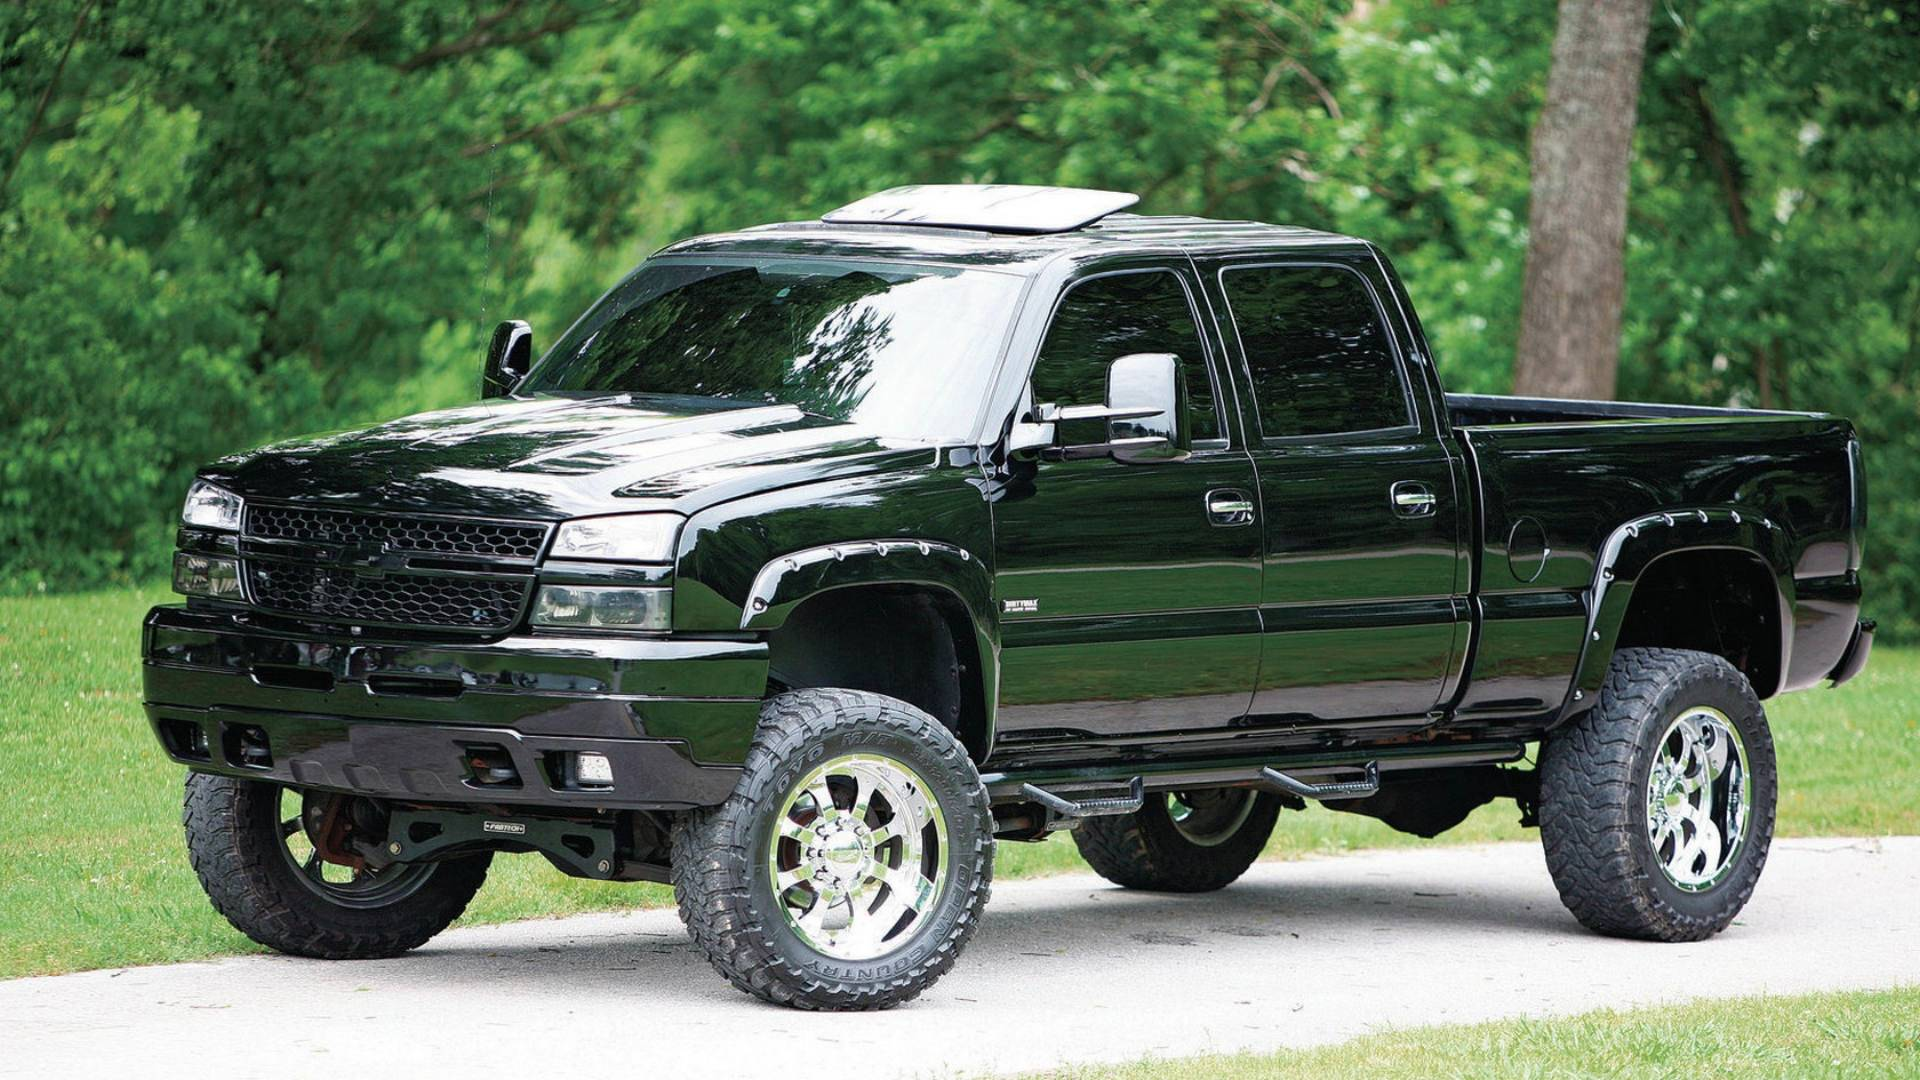 Max Power Cars Wallpaper Size Matters When Finding The Right Pickup Truck